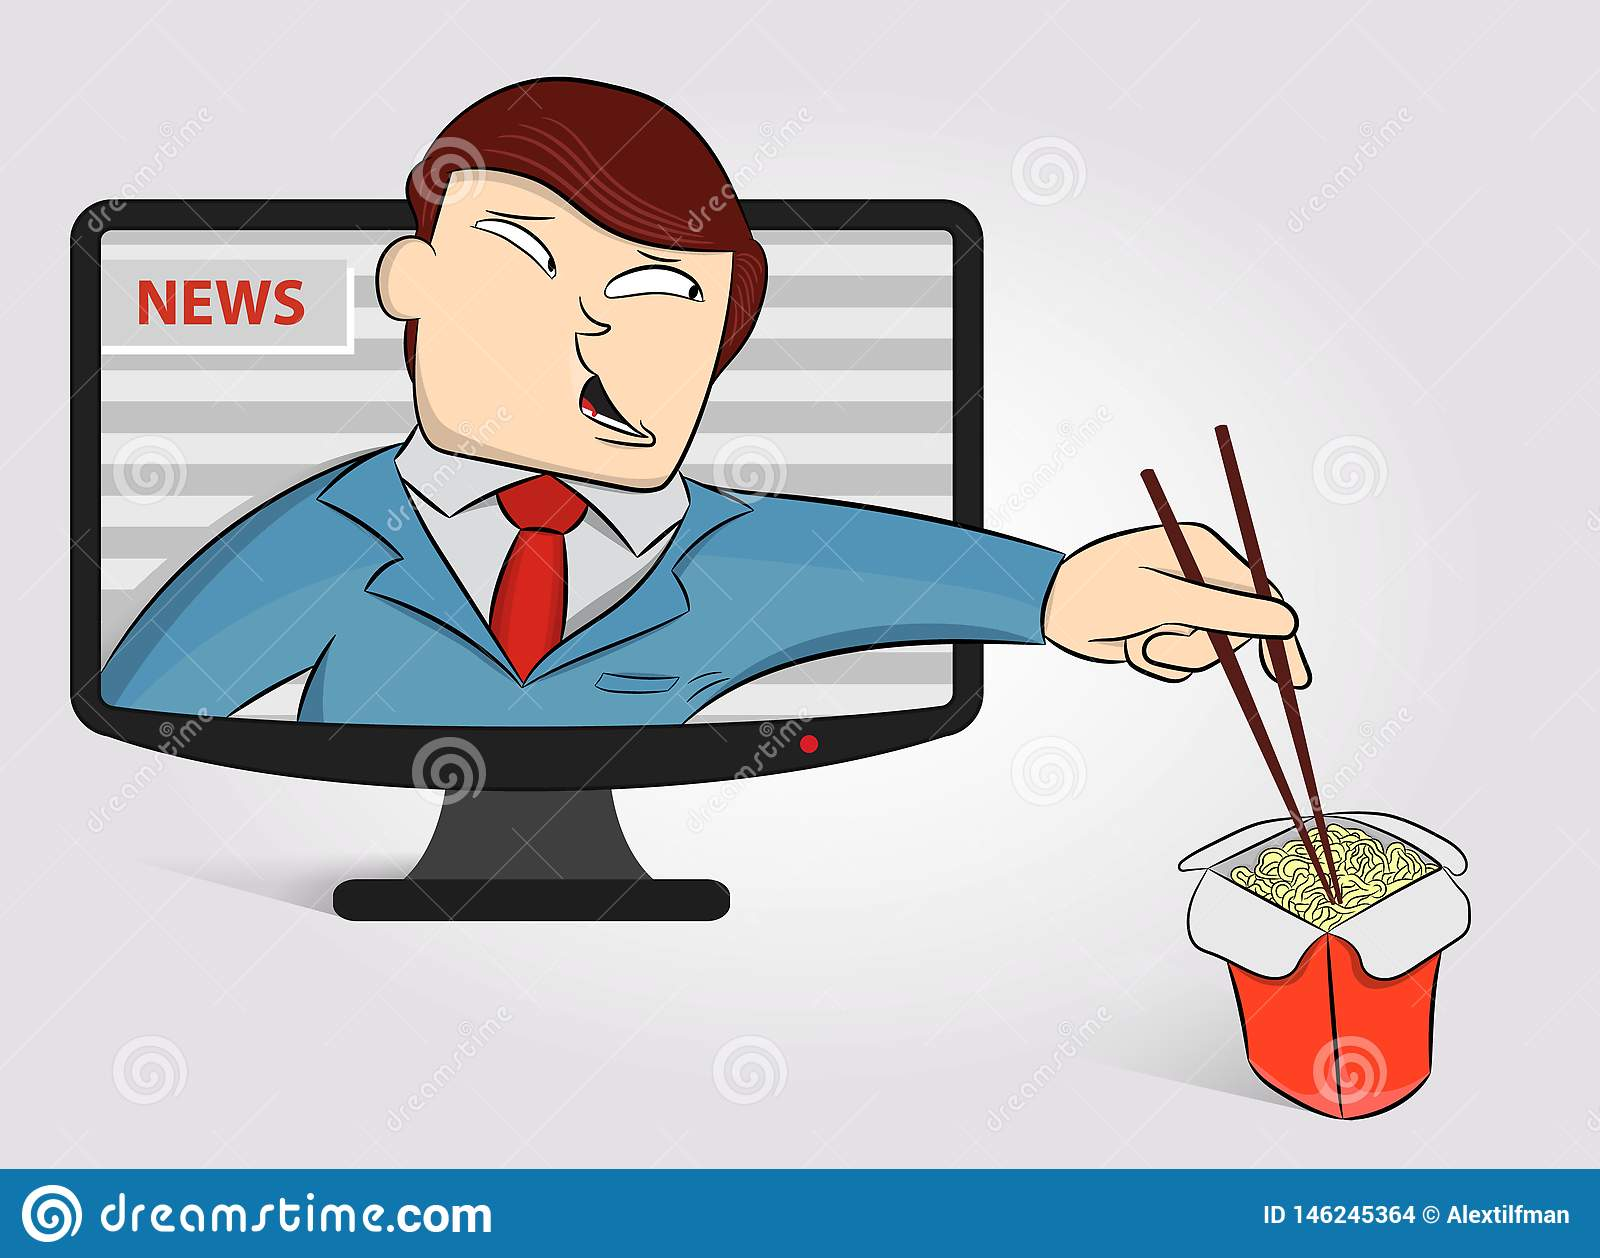 Hungry anchorperson got out of the TV to eat noodles. Funny News Anchor on TV Breaking News background. Male news anchor. Concept